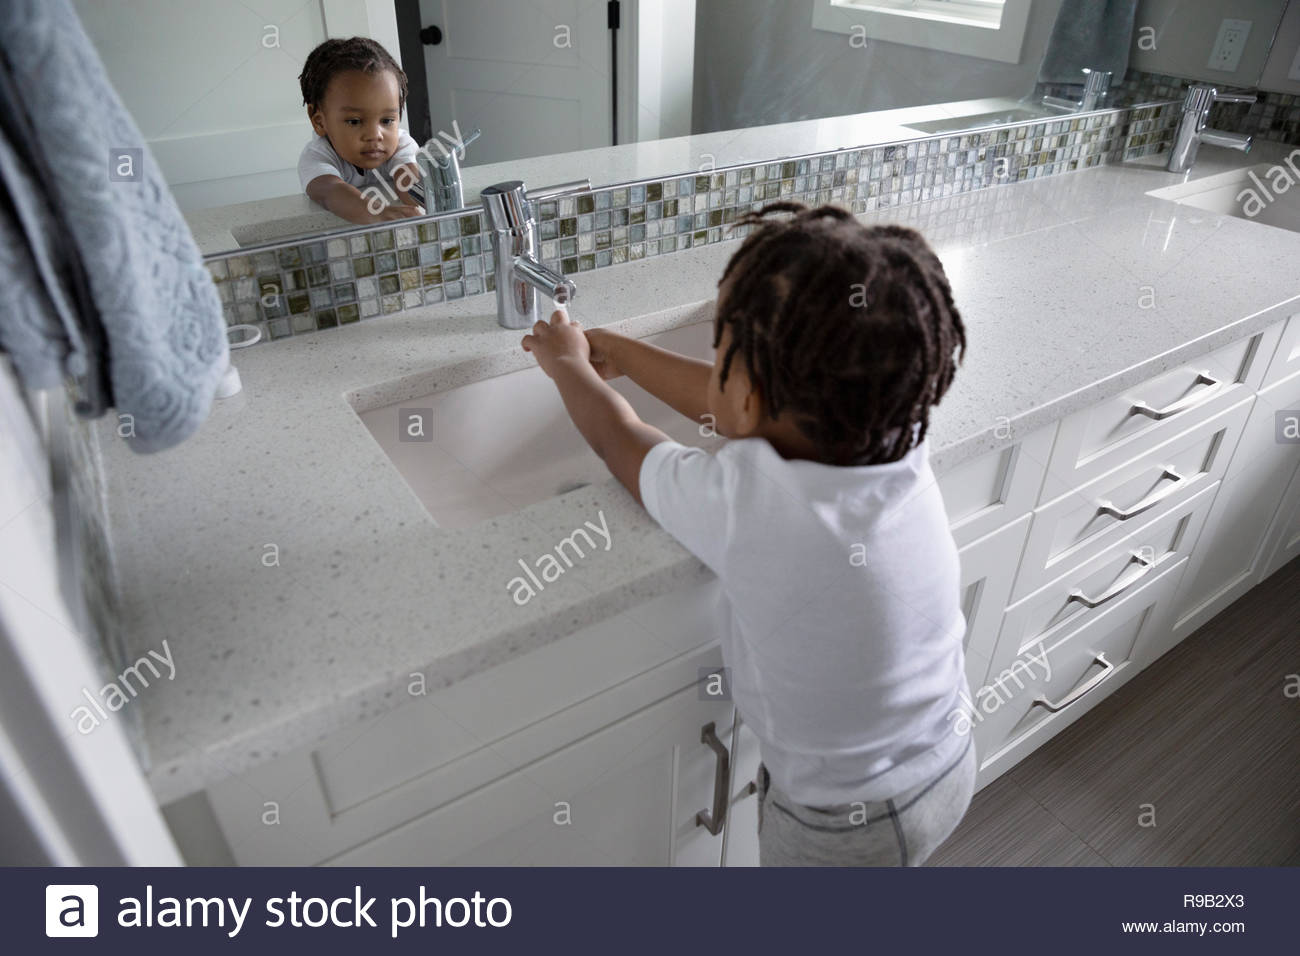 Toddler boy washing hands at bathroom sink - Stock Image